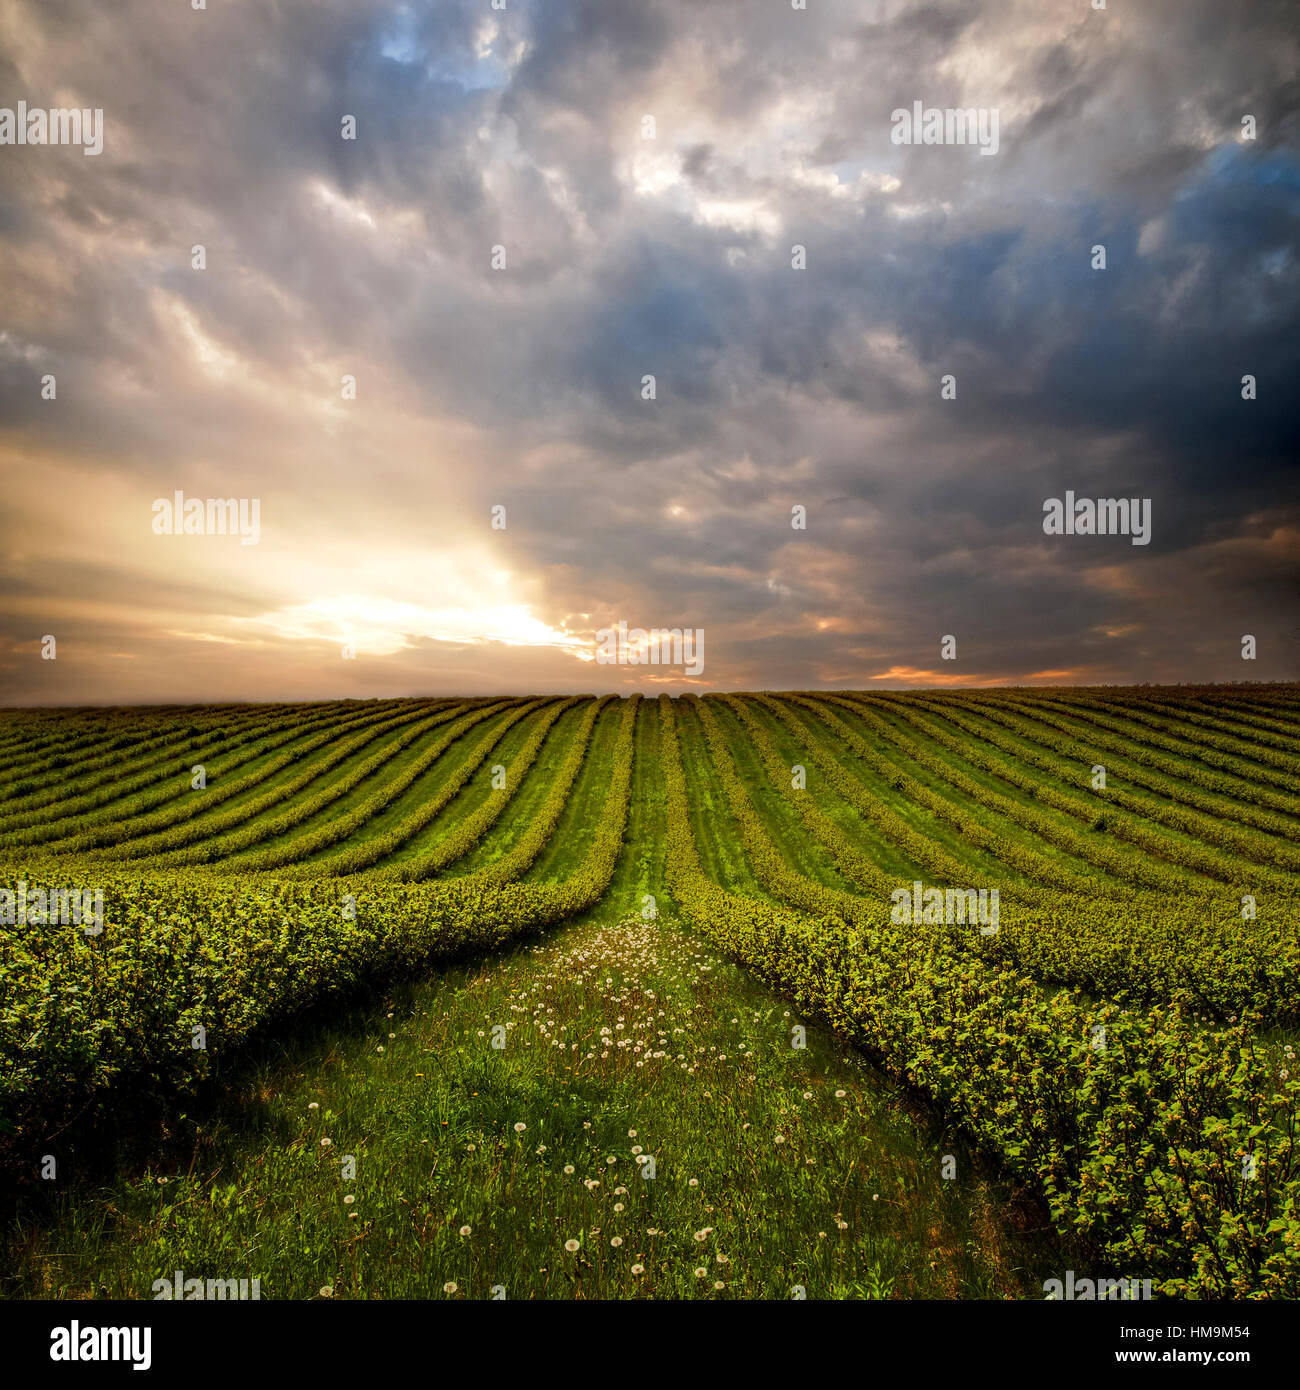 green field with bushes - Stock Image